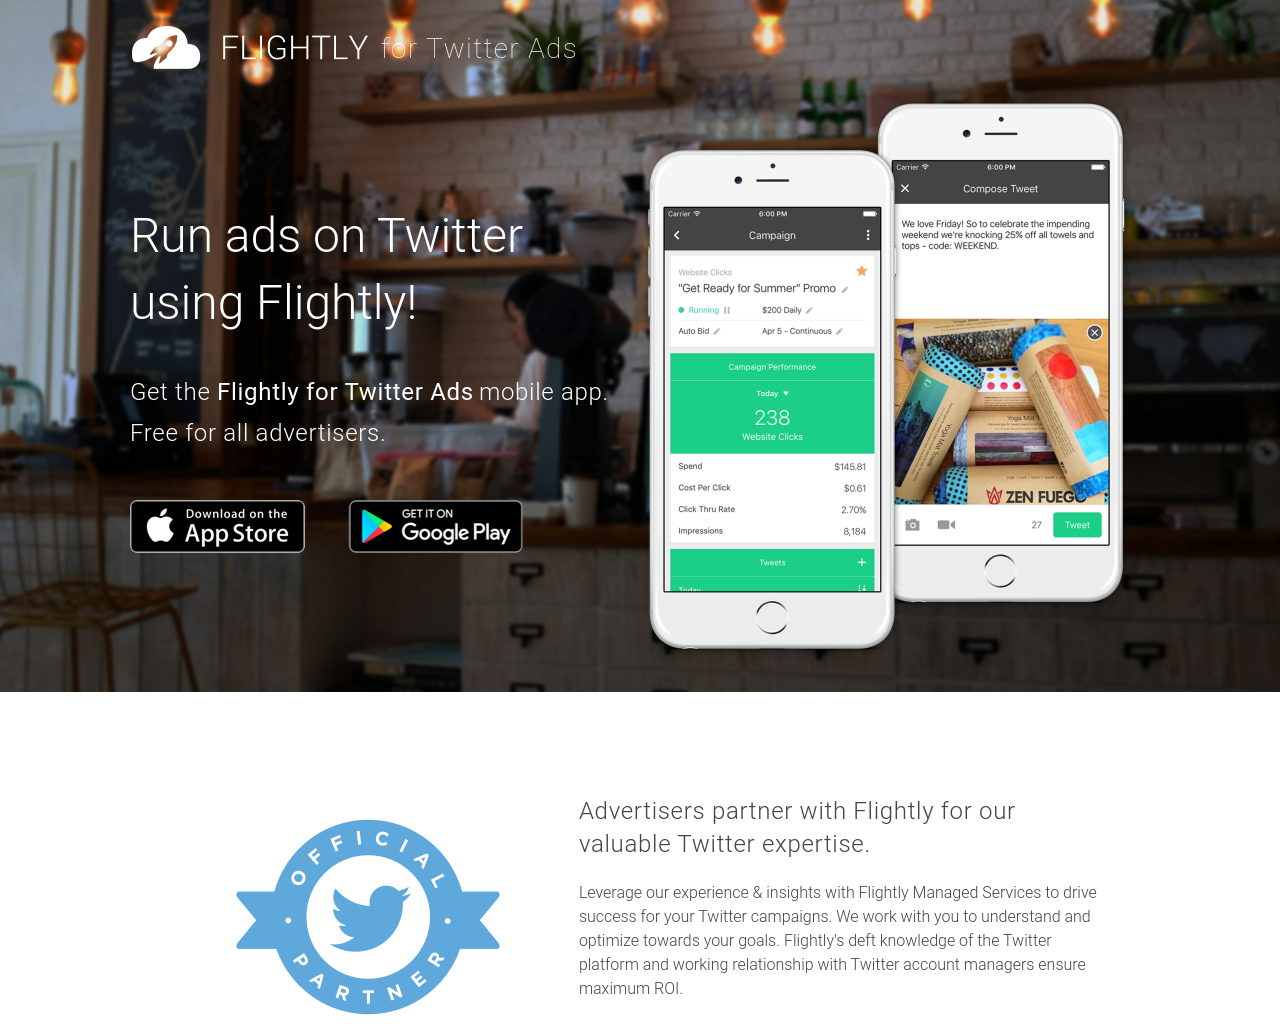 Flightly-Advertising-Reviews-Pricing